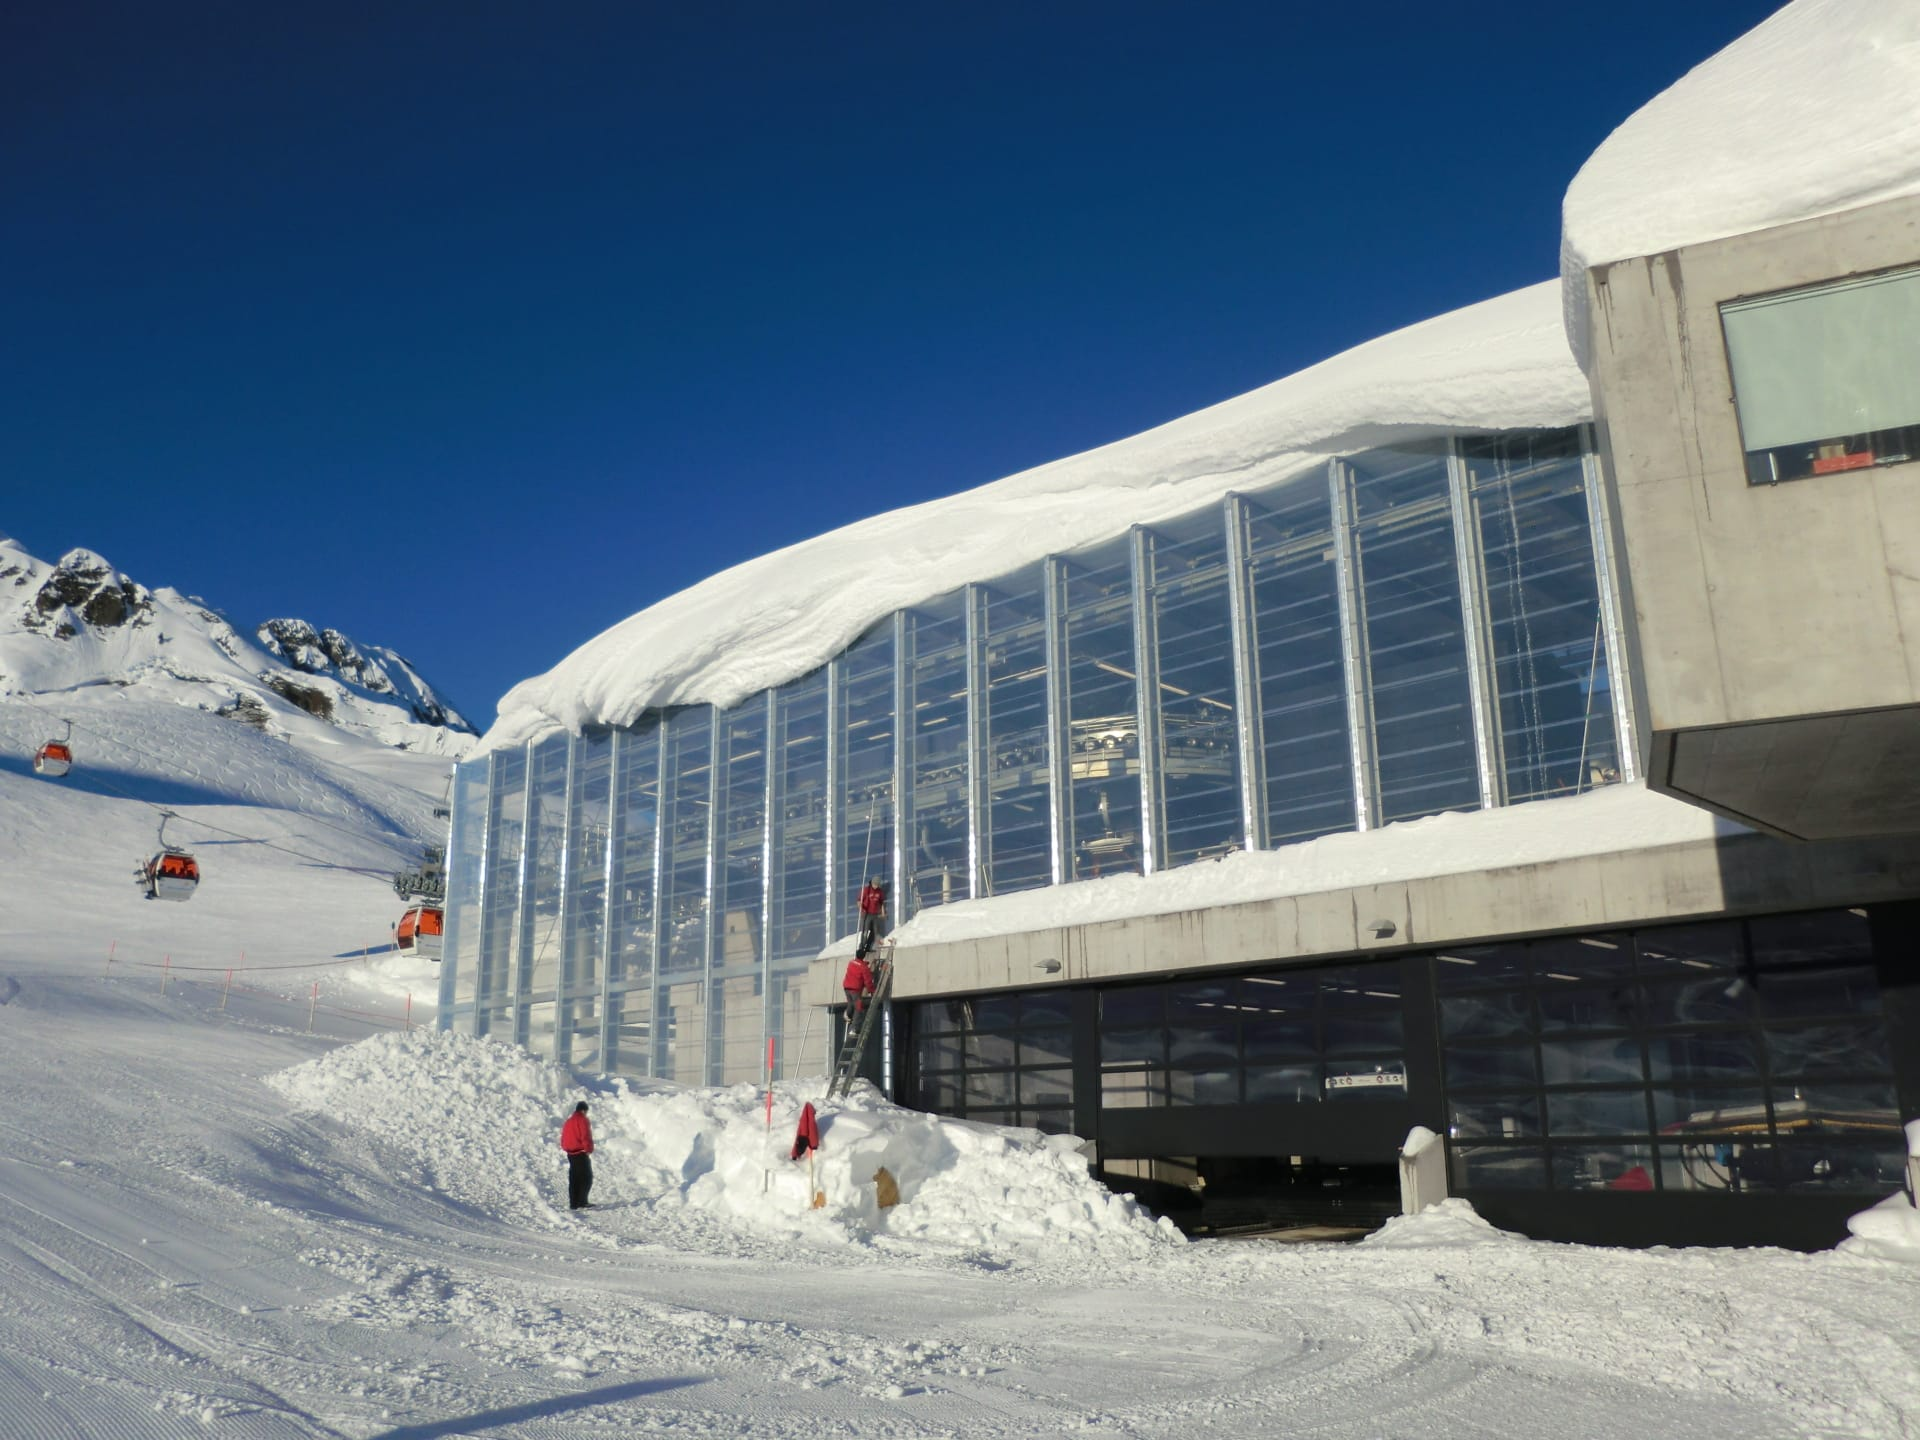 The Grasjoch Bahn is comprised of 2,435 m² of clear  and duable Texlon® ETFE foil